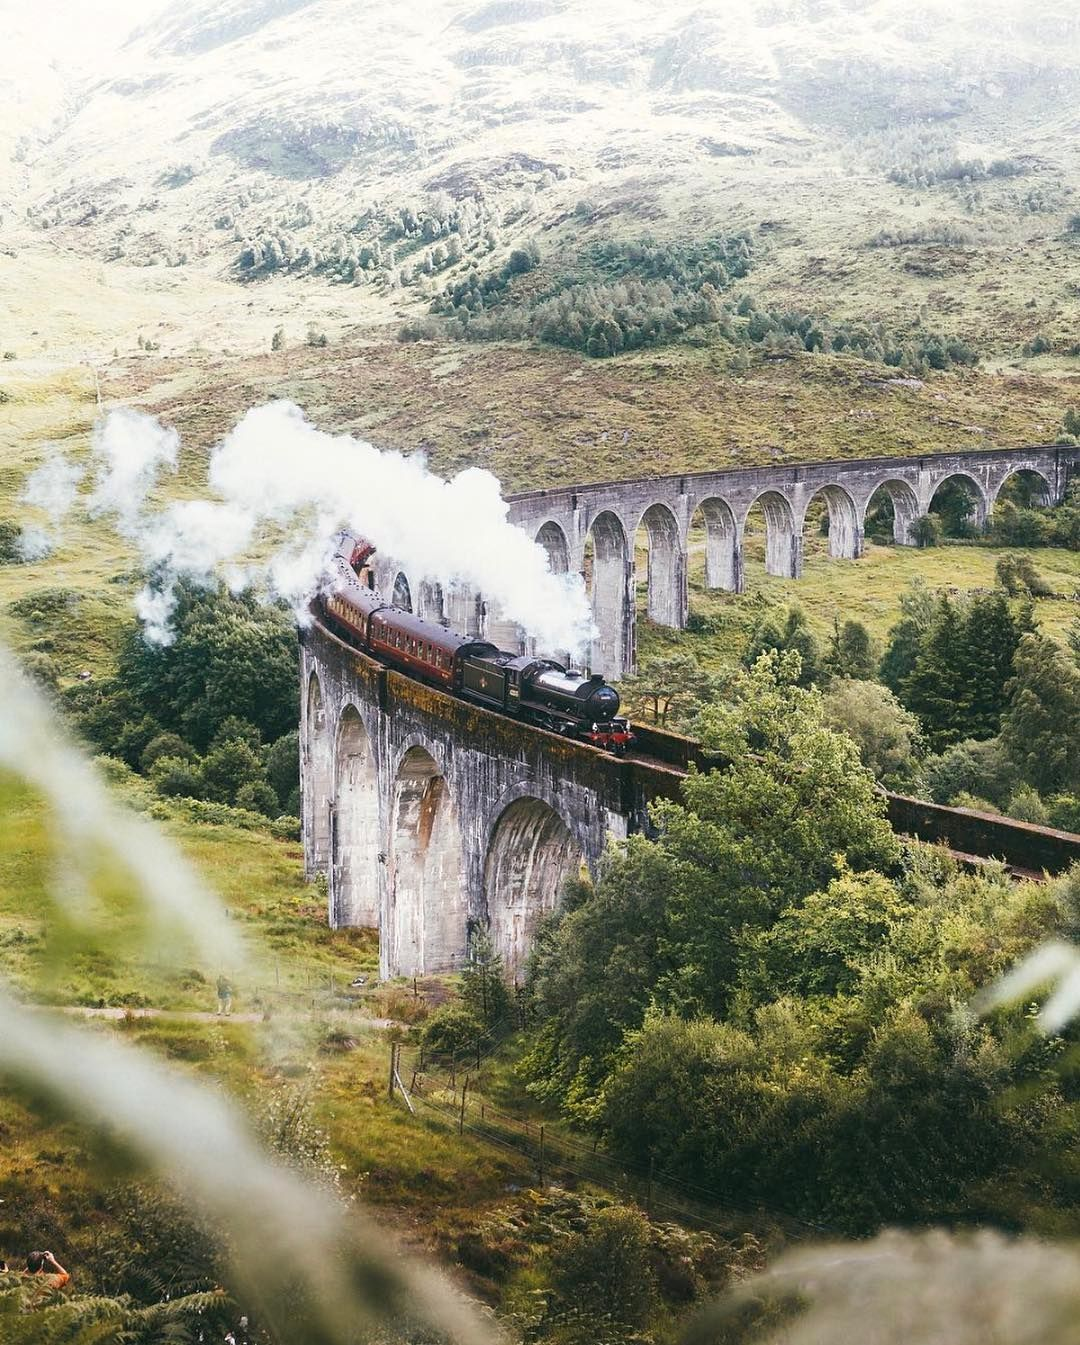 All Aboard The Hogwarts Express Though The Glenfinnan Viaduct S Popularity Can Be Partly Credited To A C Next Think Und Schottland